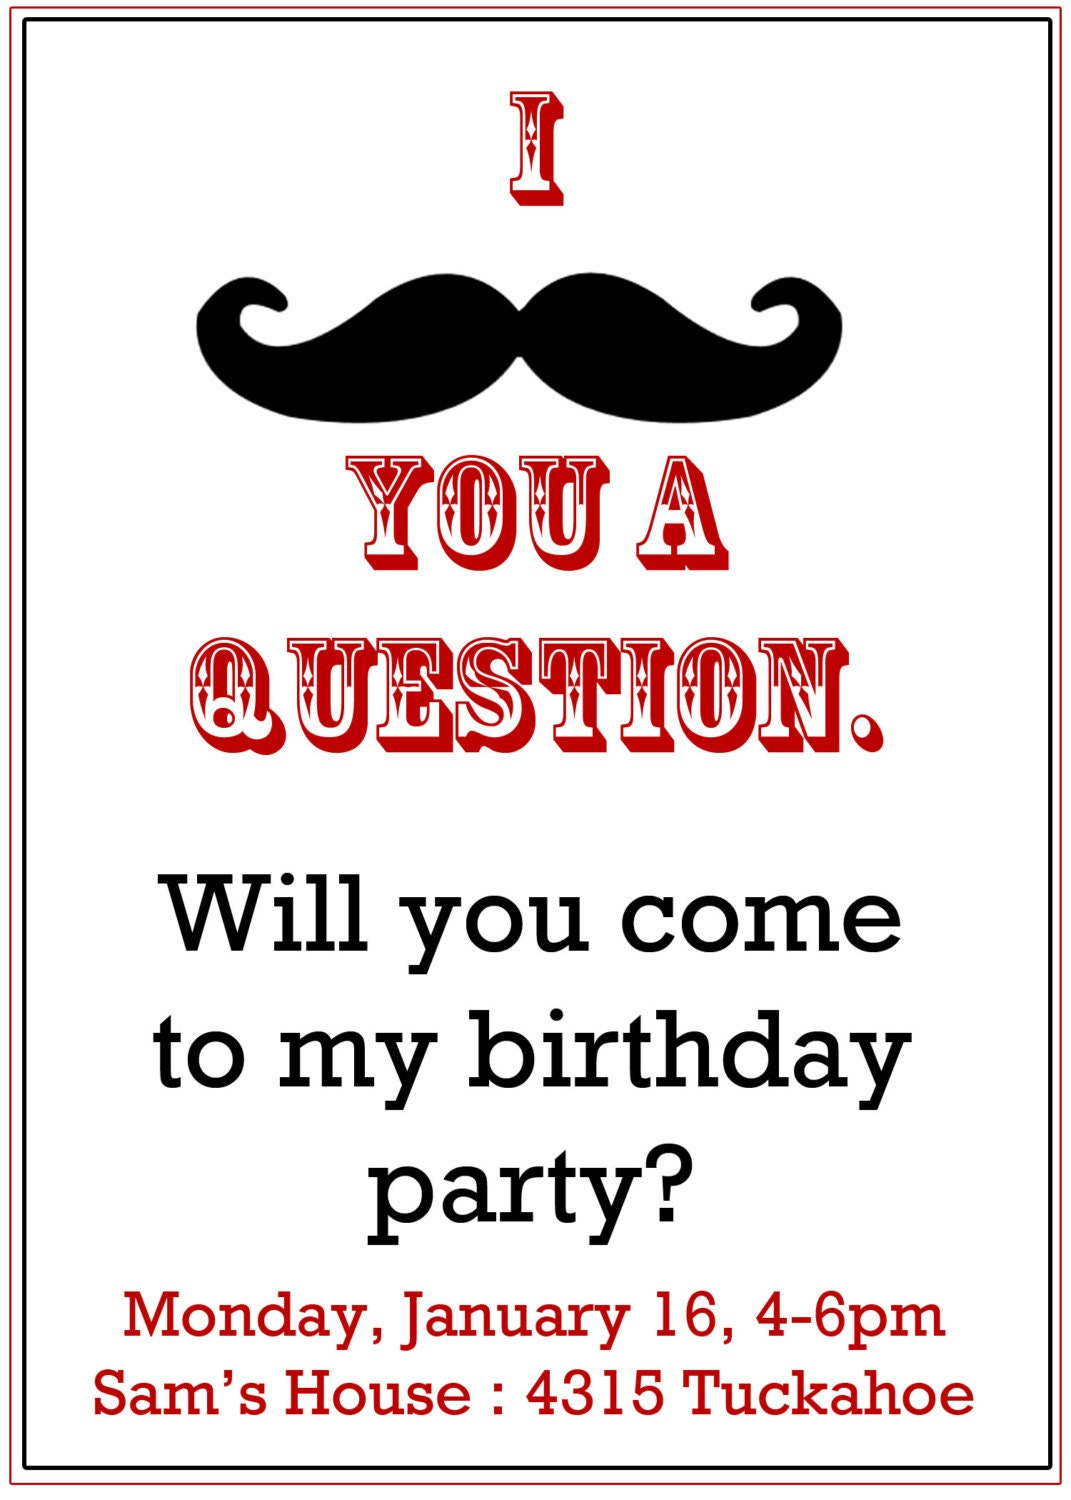 Moustache Party Invitations with best invitations layout